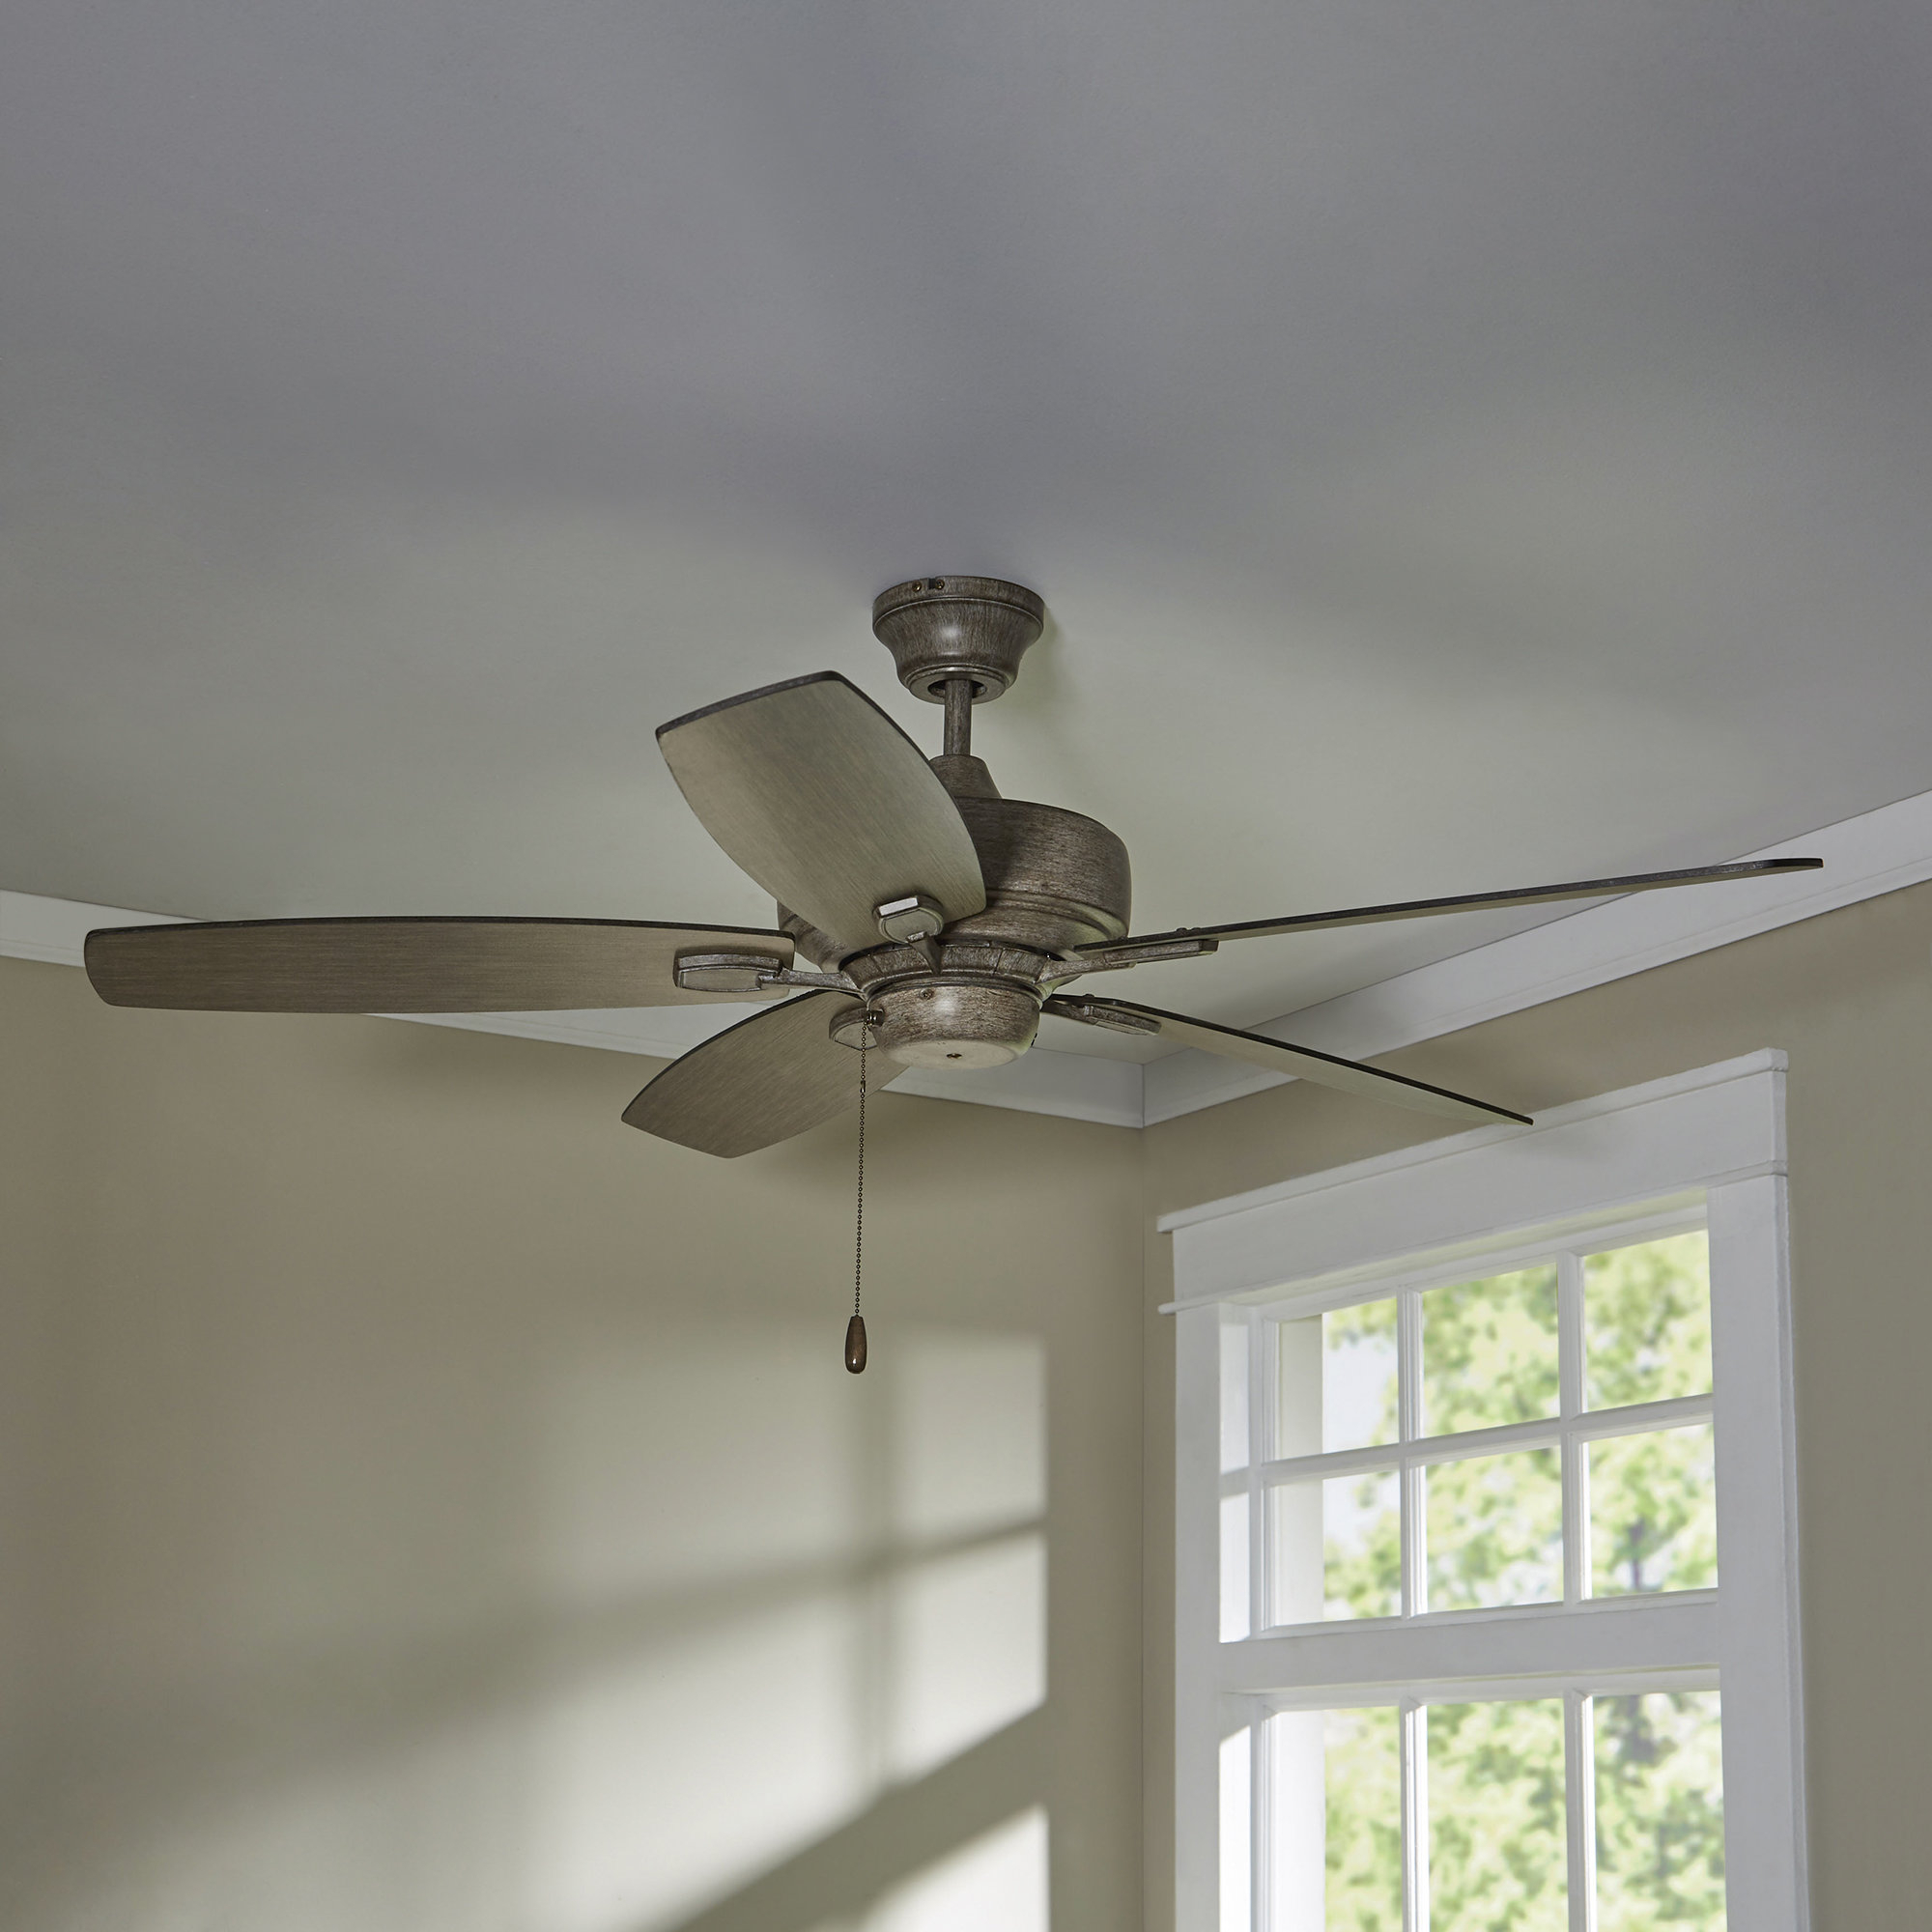 "Cerro 5 Blade Ceiling Fans Pertaining To 2020 52"" Mcginley 5 Blade Ceiling Fan (View 7 of 20)"